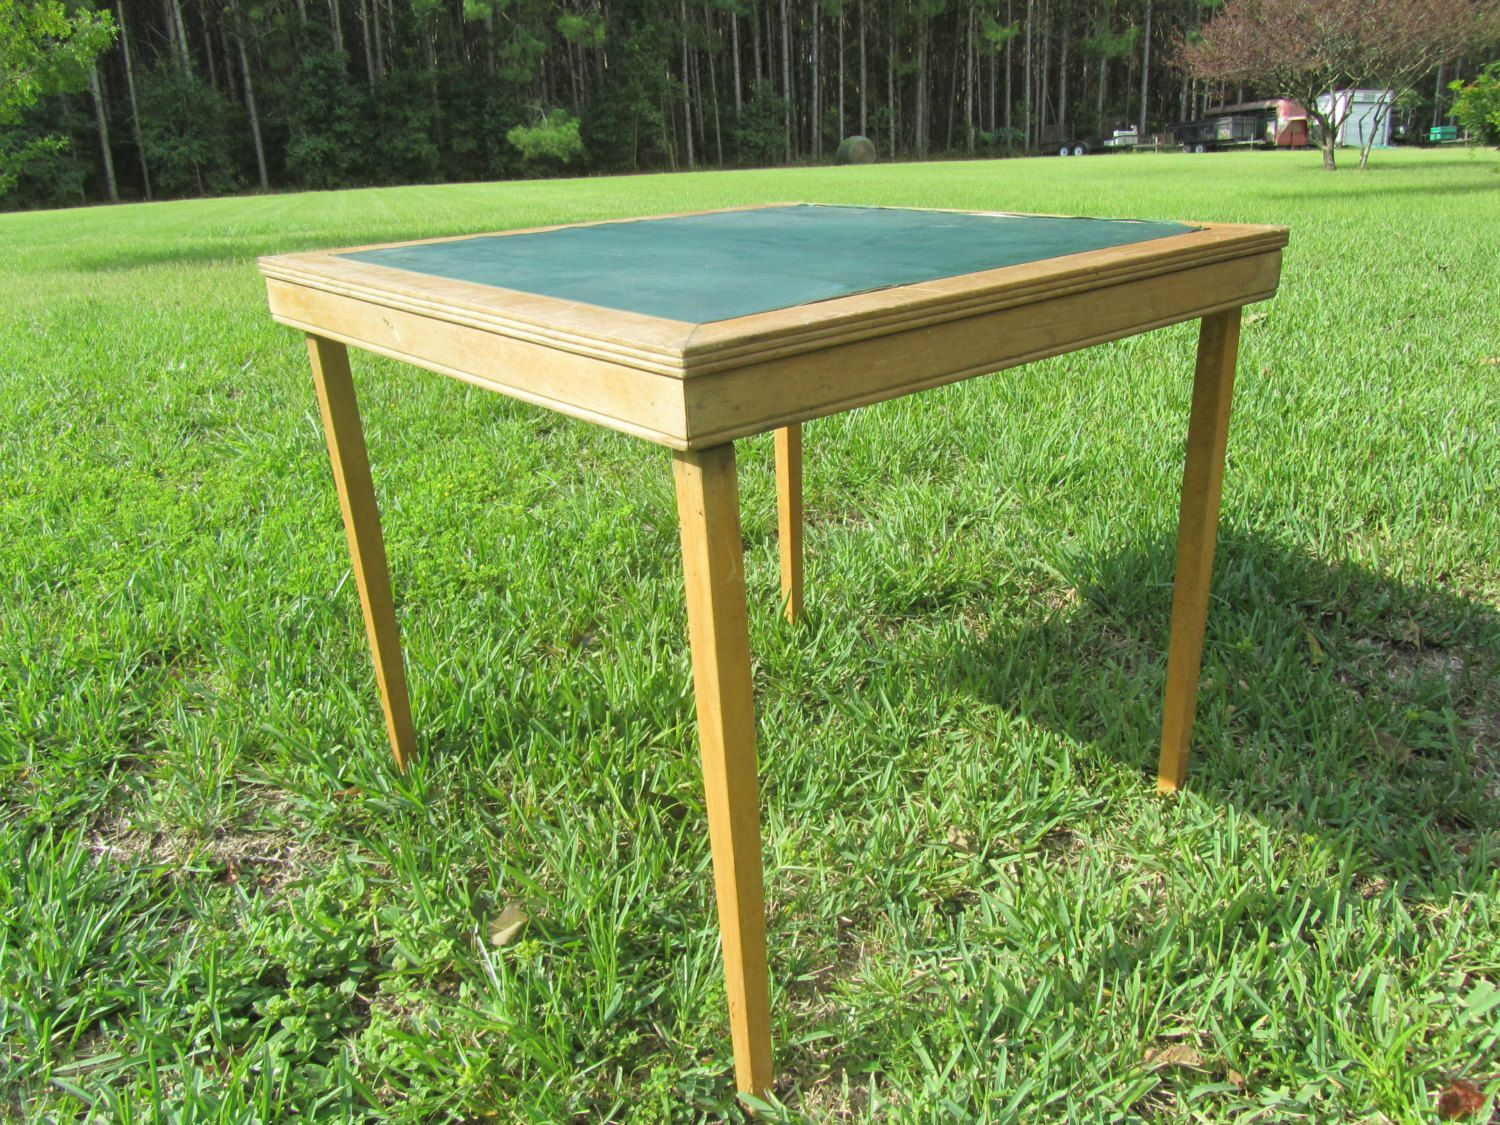 Vintage Card Table Folding Table Vintage Wood Table Green Mid Century Table Man Cave Card Game Game Table Picnic 1 Mid Century Table Vintage Wood Wood Table